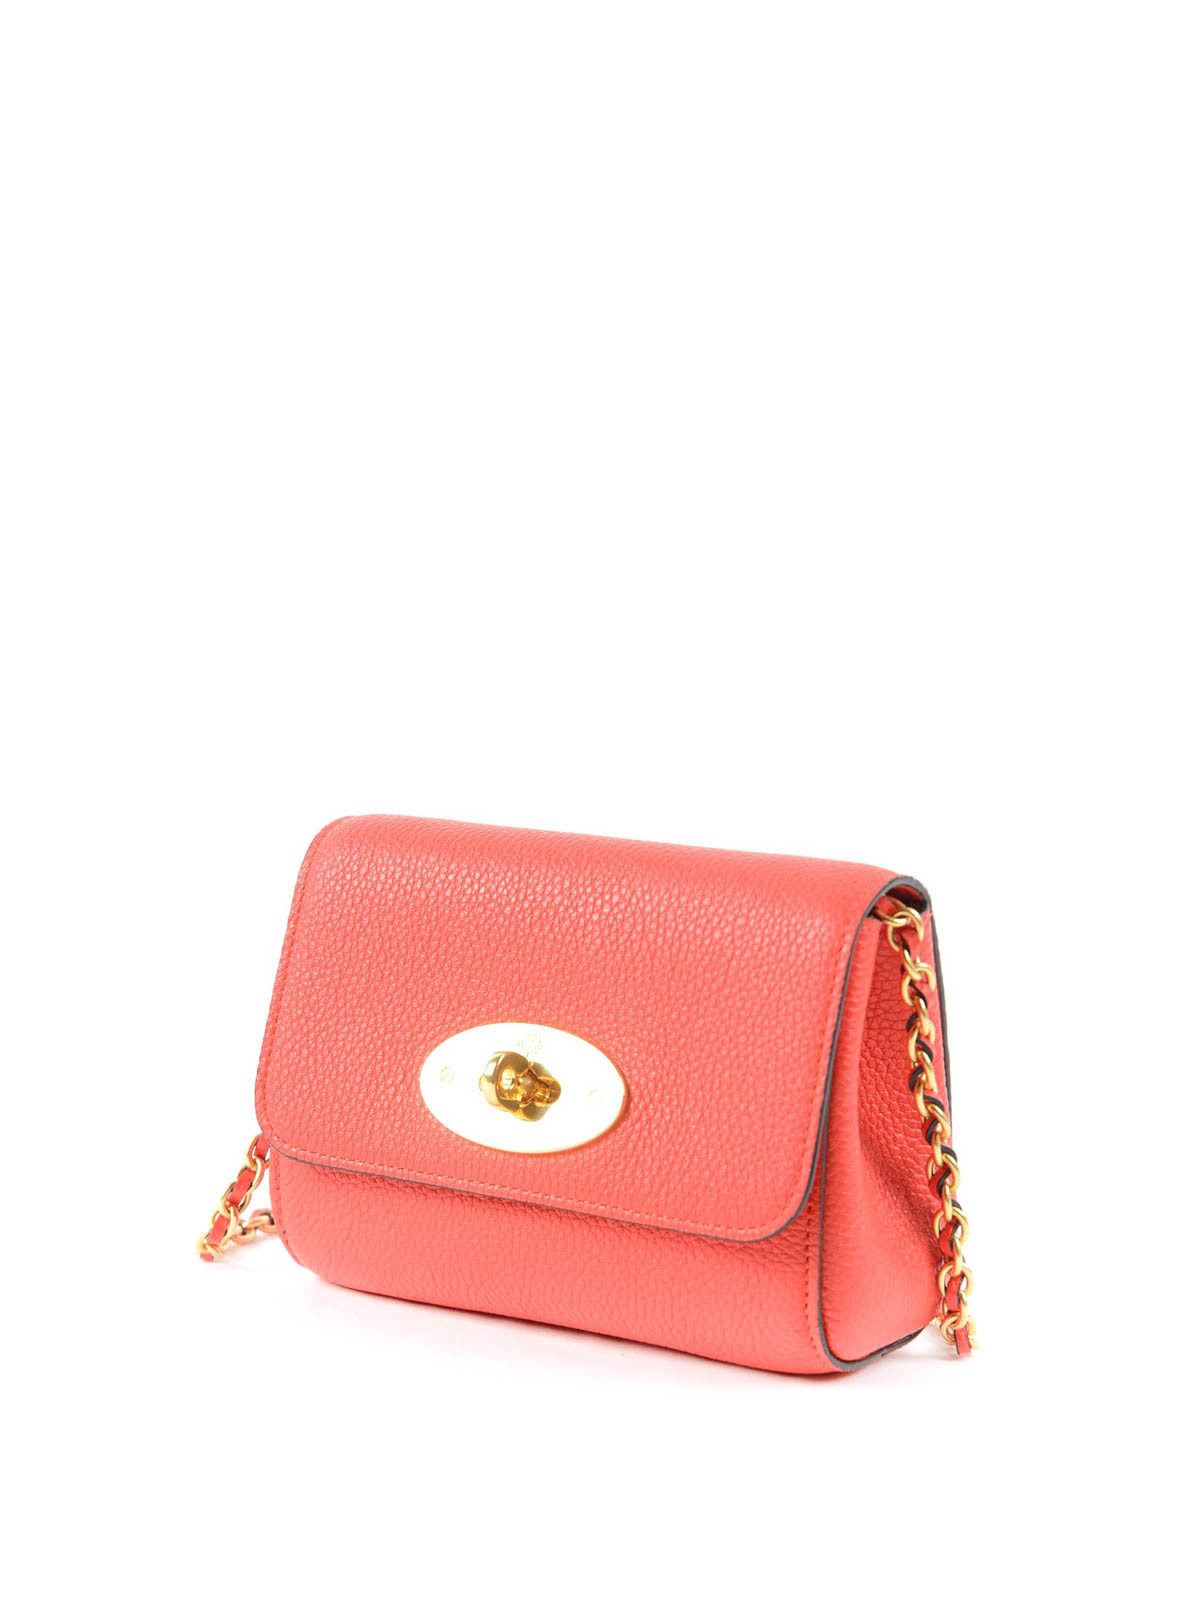 0aec9b3855 ... real mulberry cross body bags online lily leather mini crossbody bag  36b22 bbe7c